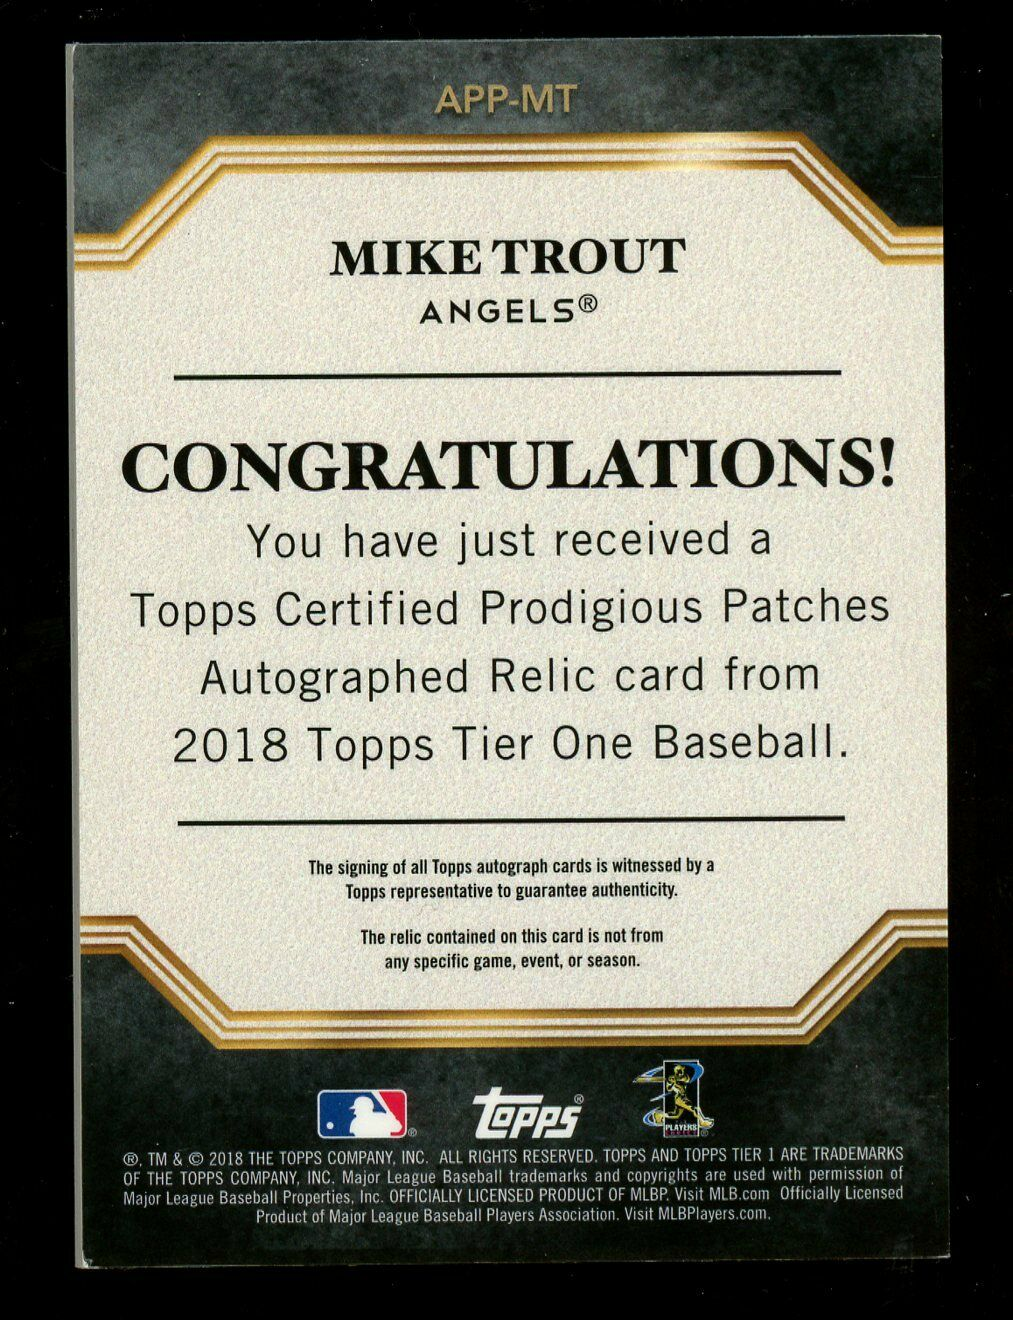 2018 Topps Tier One Prodigious Patches Mike Trout 4-Color Patch AUTO 5/5 Last # - Image 2